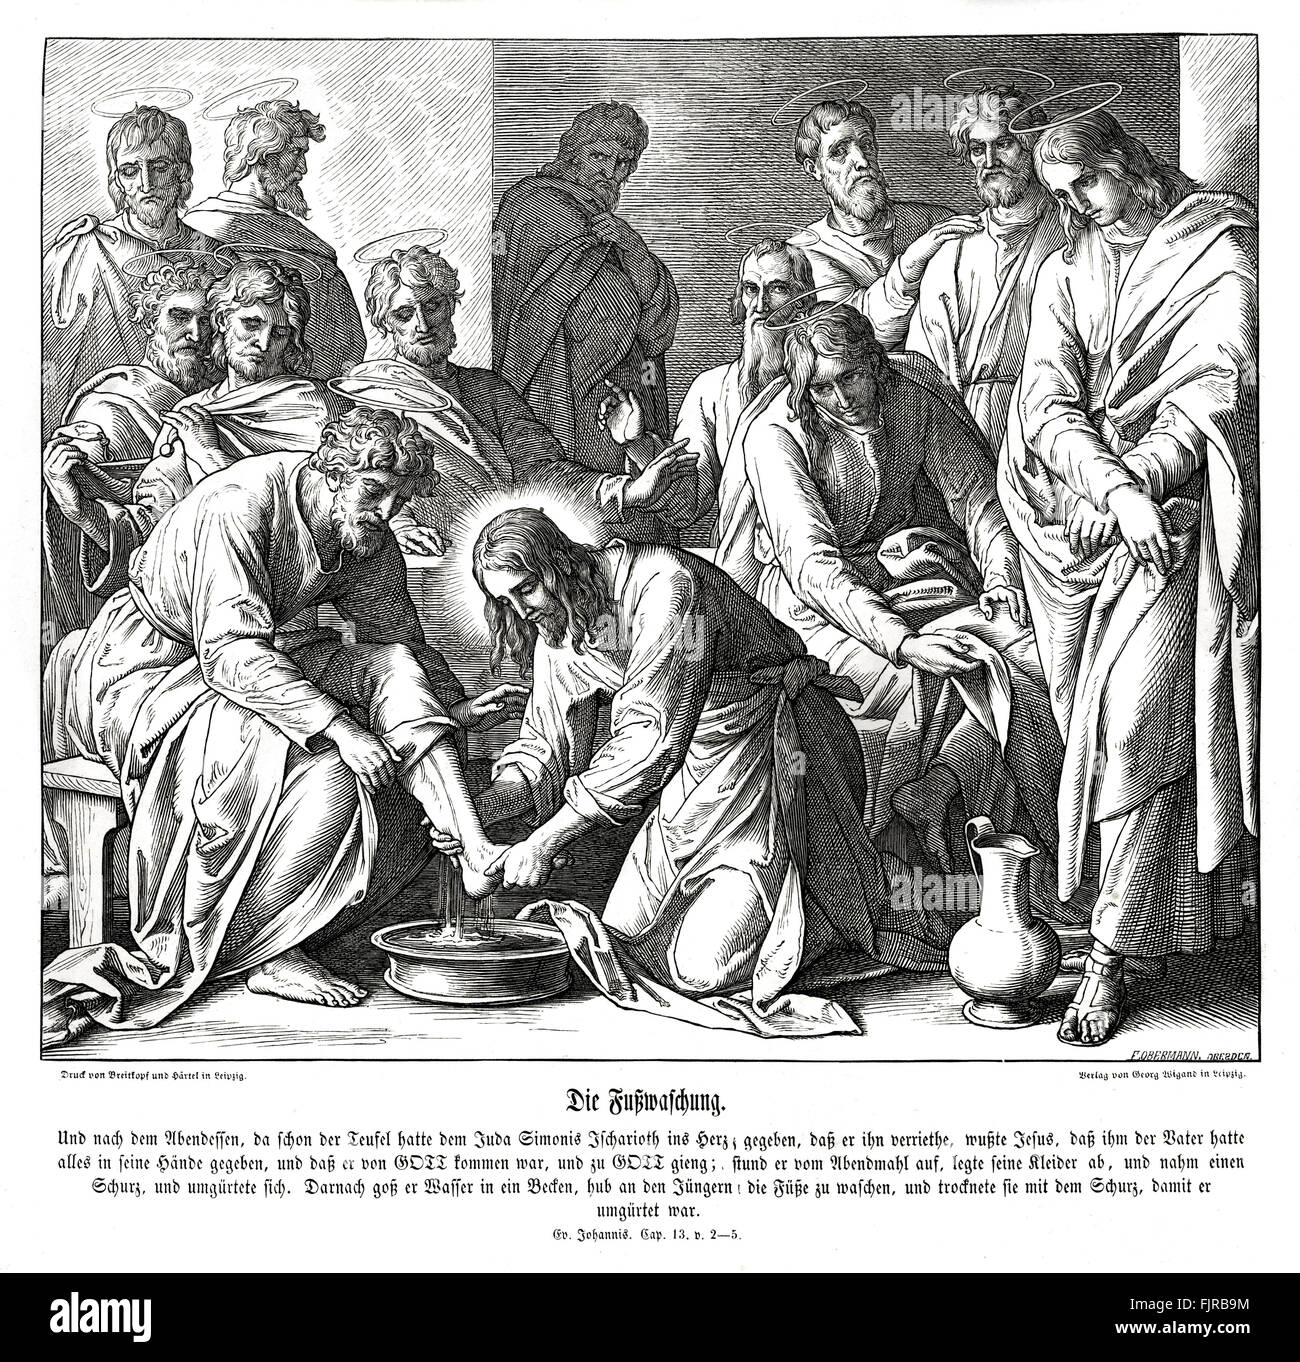 Jesus washes his disciples' feet, Gospel of John chapter XIII verses 2 - 5 'And supper being ended, the - Stock Image